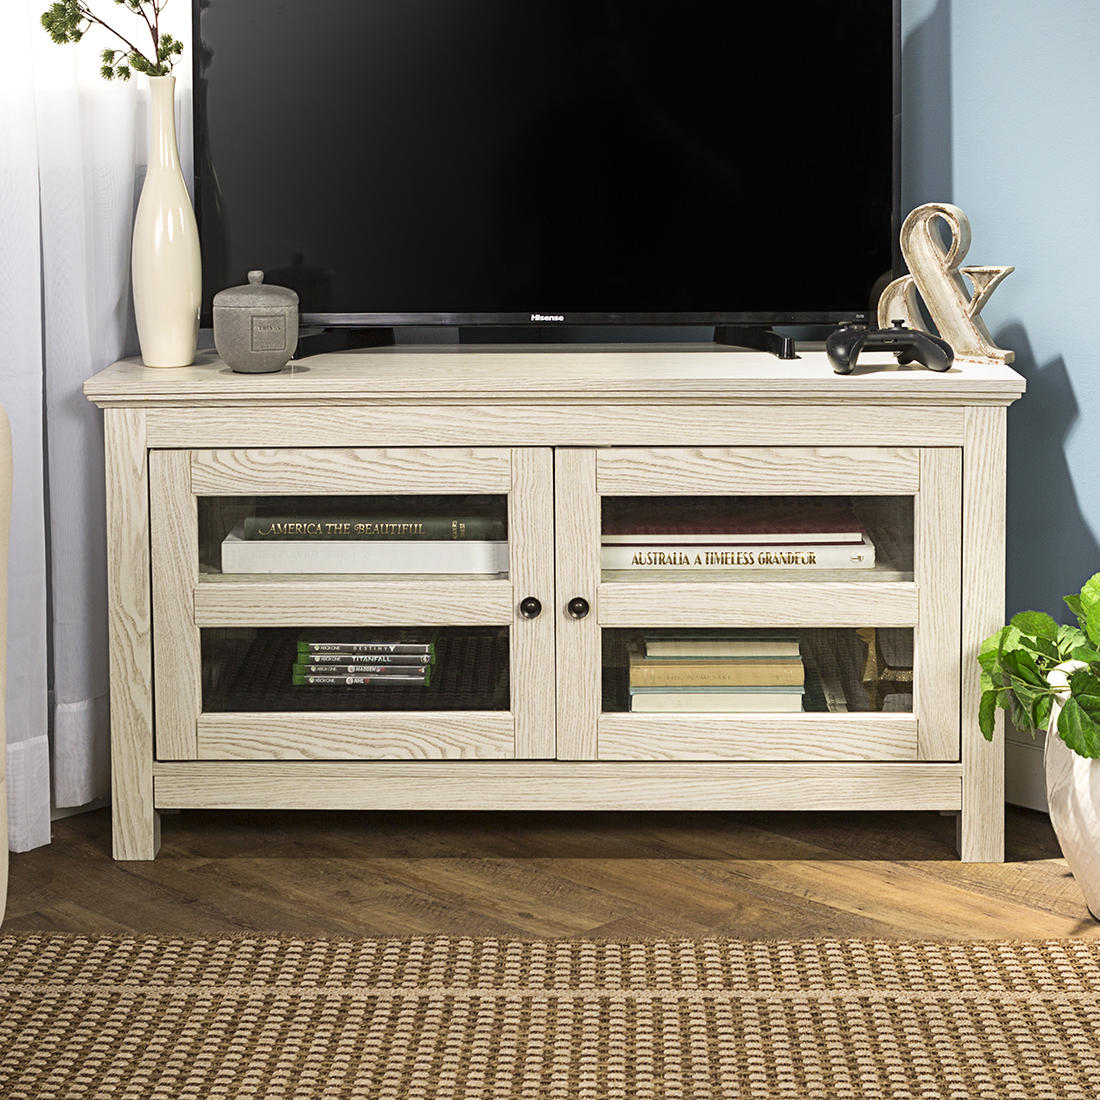 W Trends 44 Wood Corner Tv Media Stand With Storage For Tvs Up To 48 White Wash